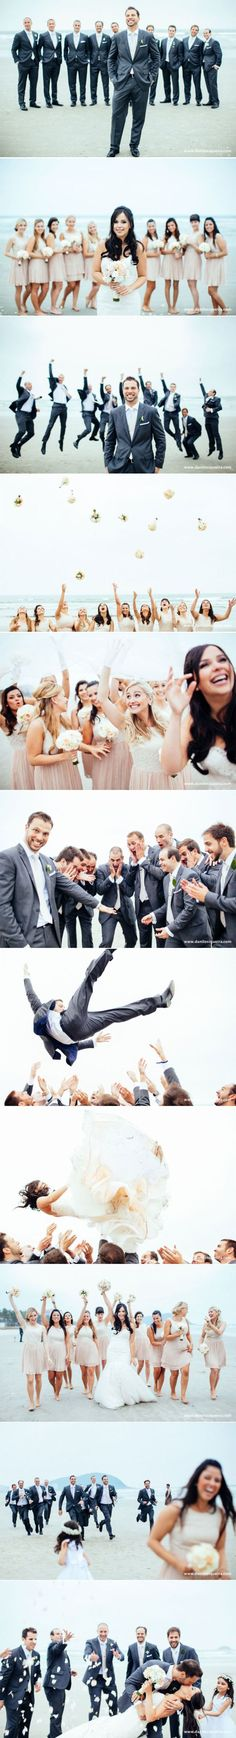 Bridesmaids and groomsmen - beautiful pictures! #weddingphotography